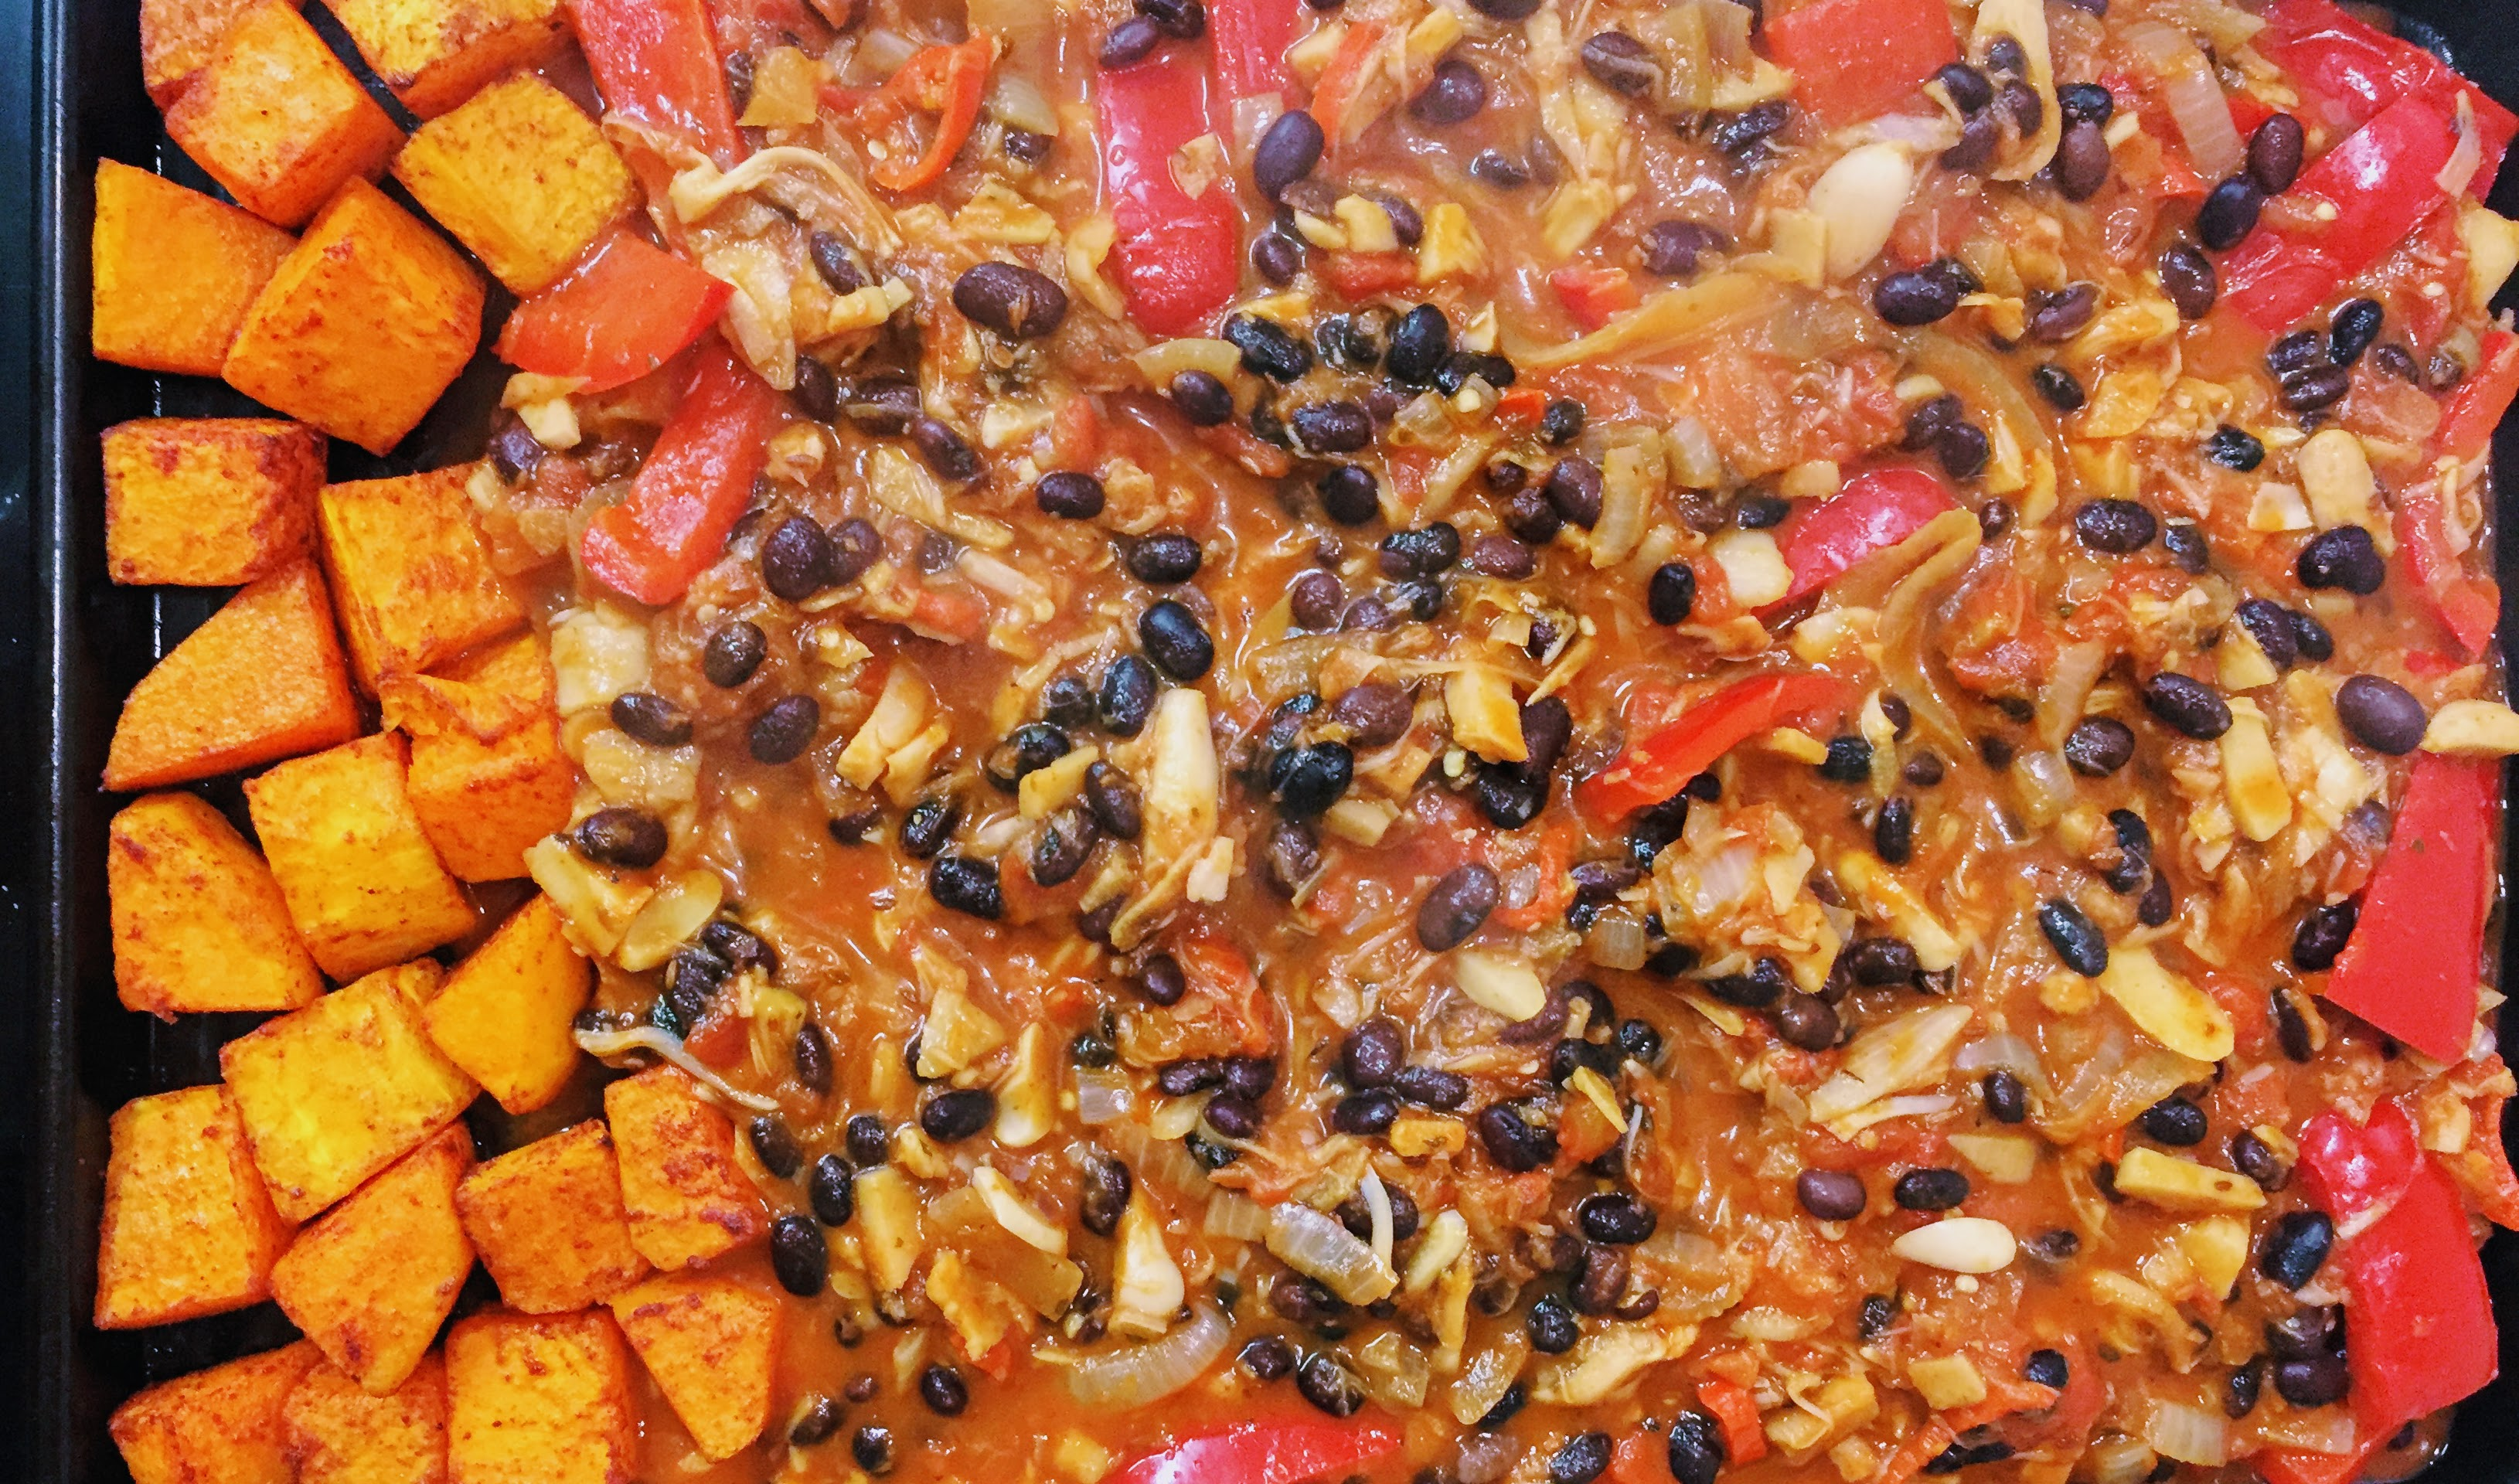 A baking tray with vibrant chunks of butternut squash on one side, and the steaming hot chilli mixture spread out across the rest of the tray.